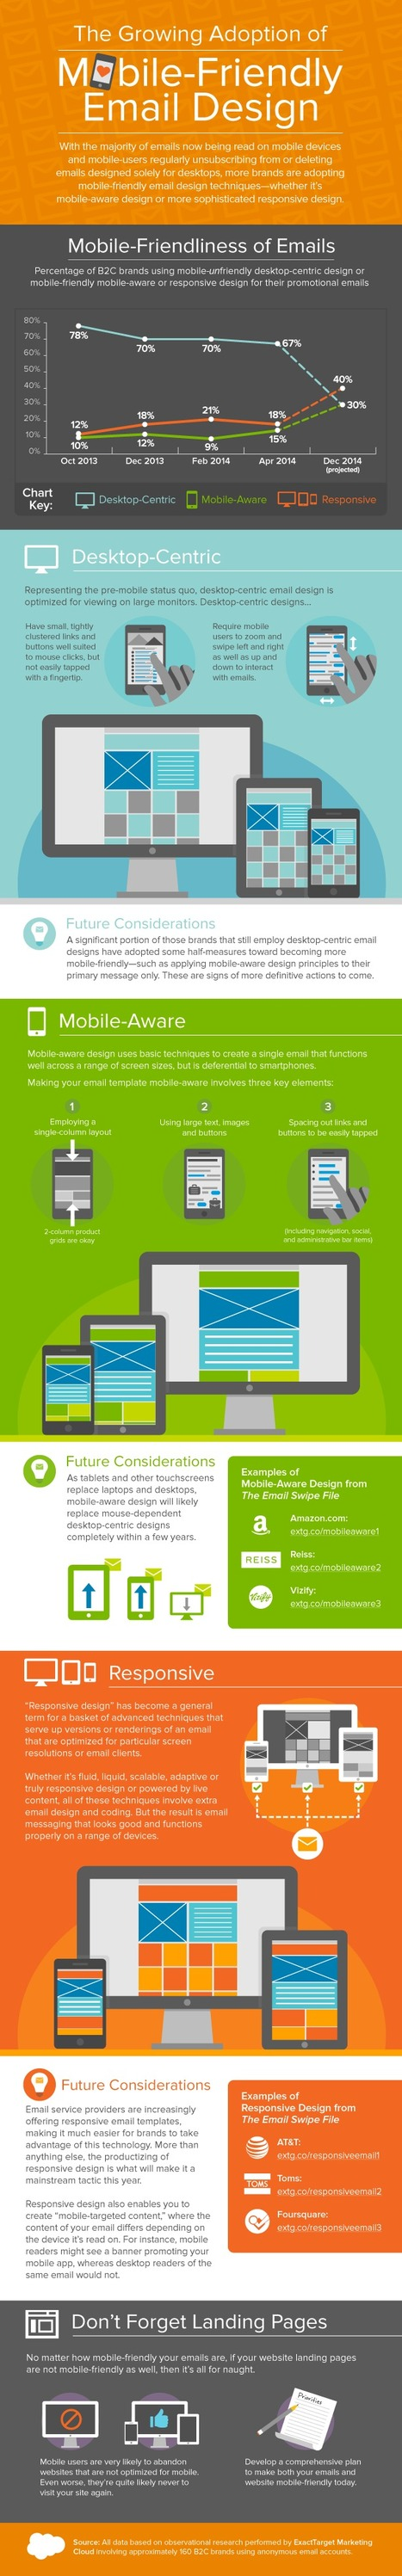 Infographic: The Growing Adoption of Mobile-Friendly Email Design - Email Marketing Rules | Social Media Art Revolution | Scoop.it